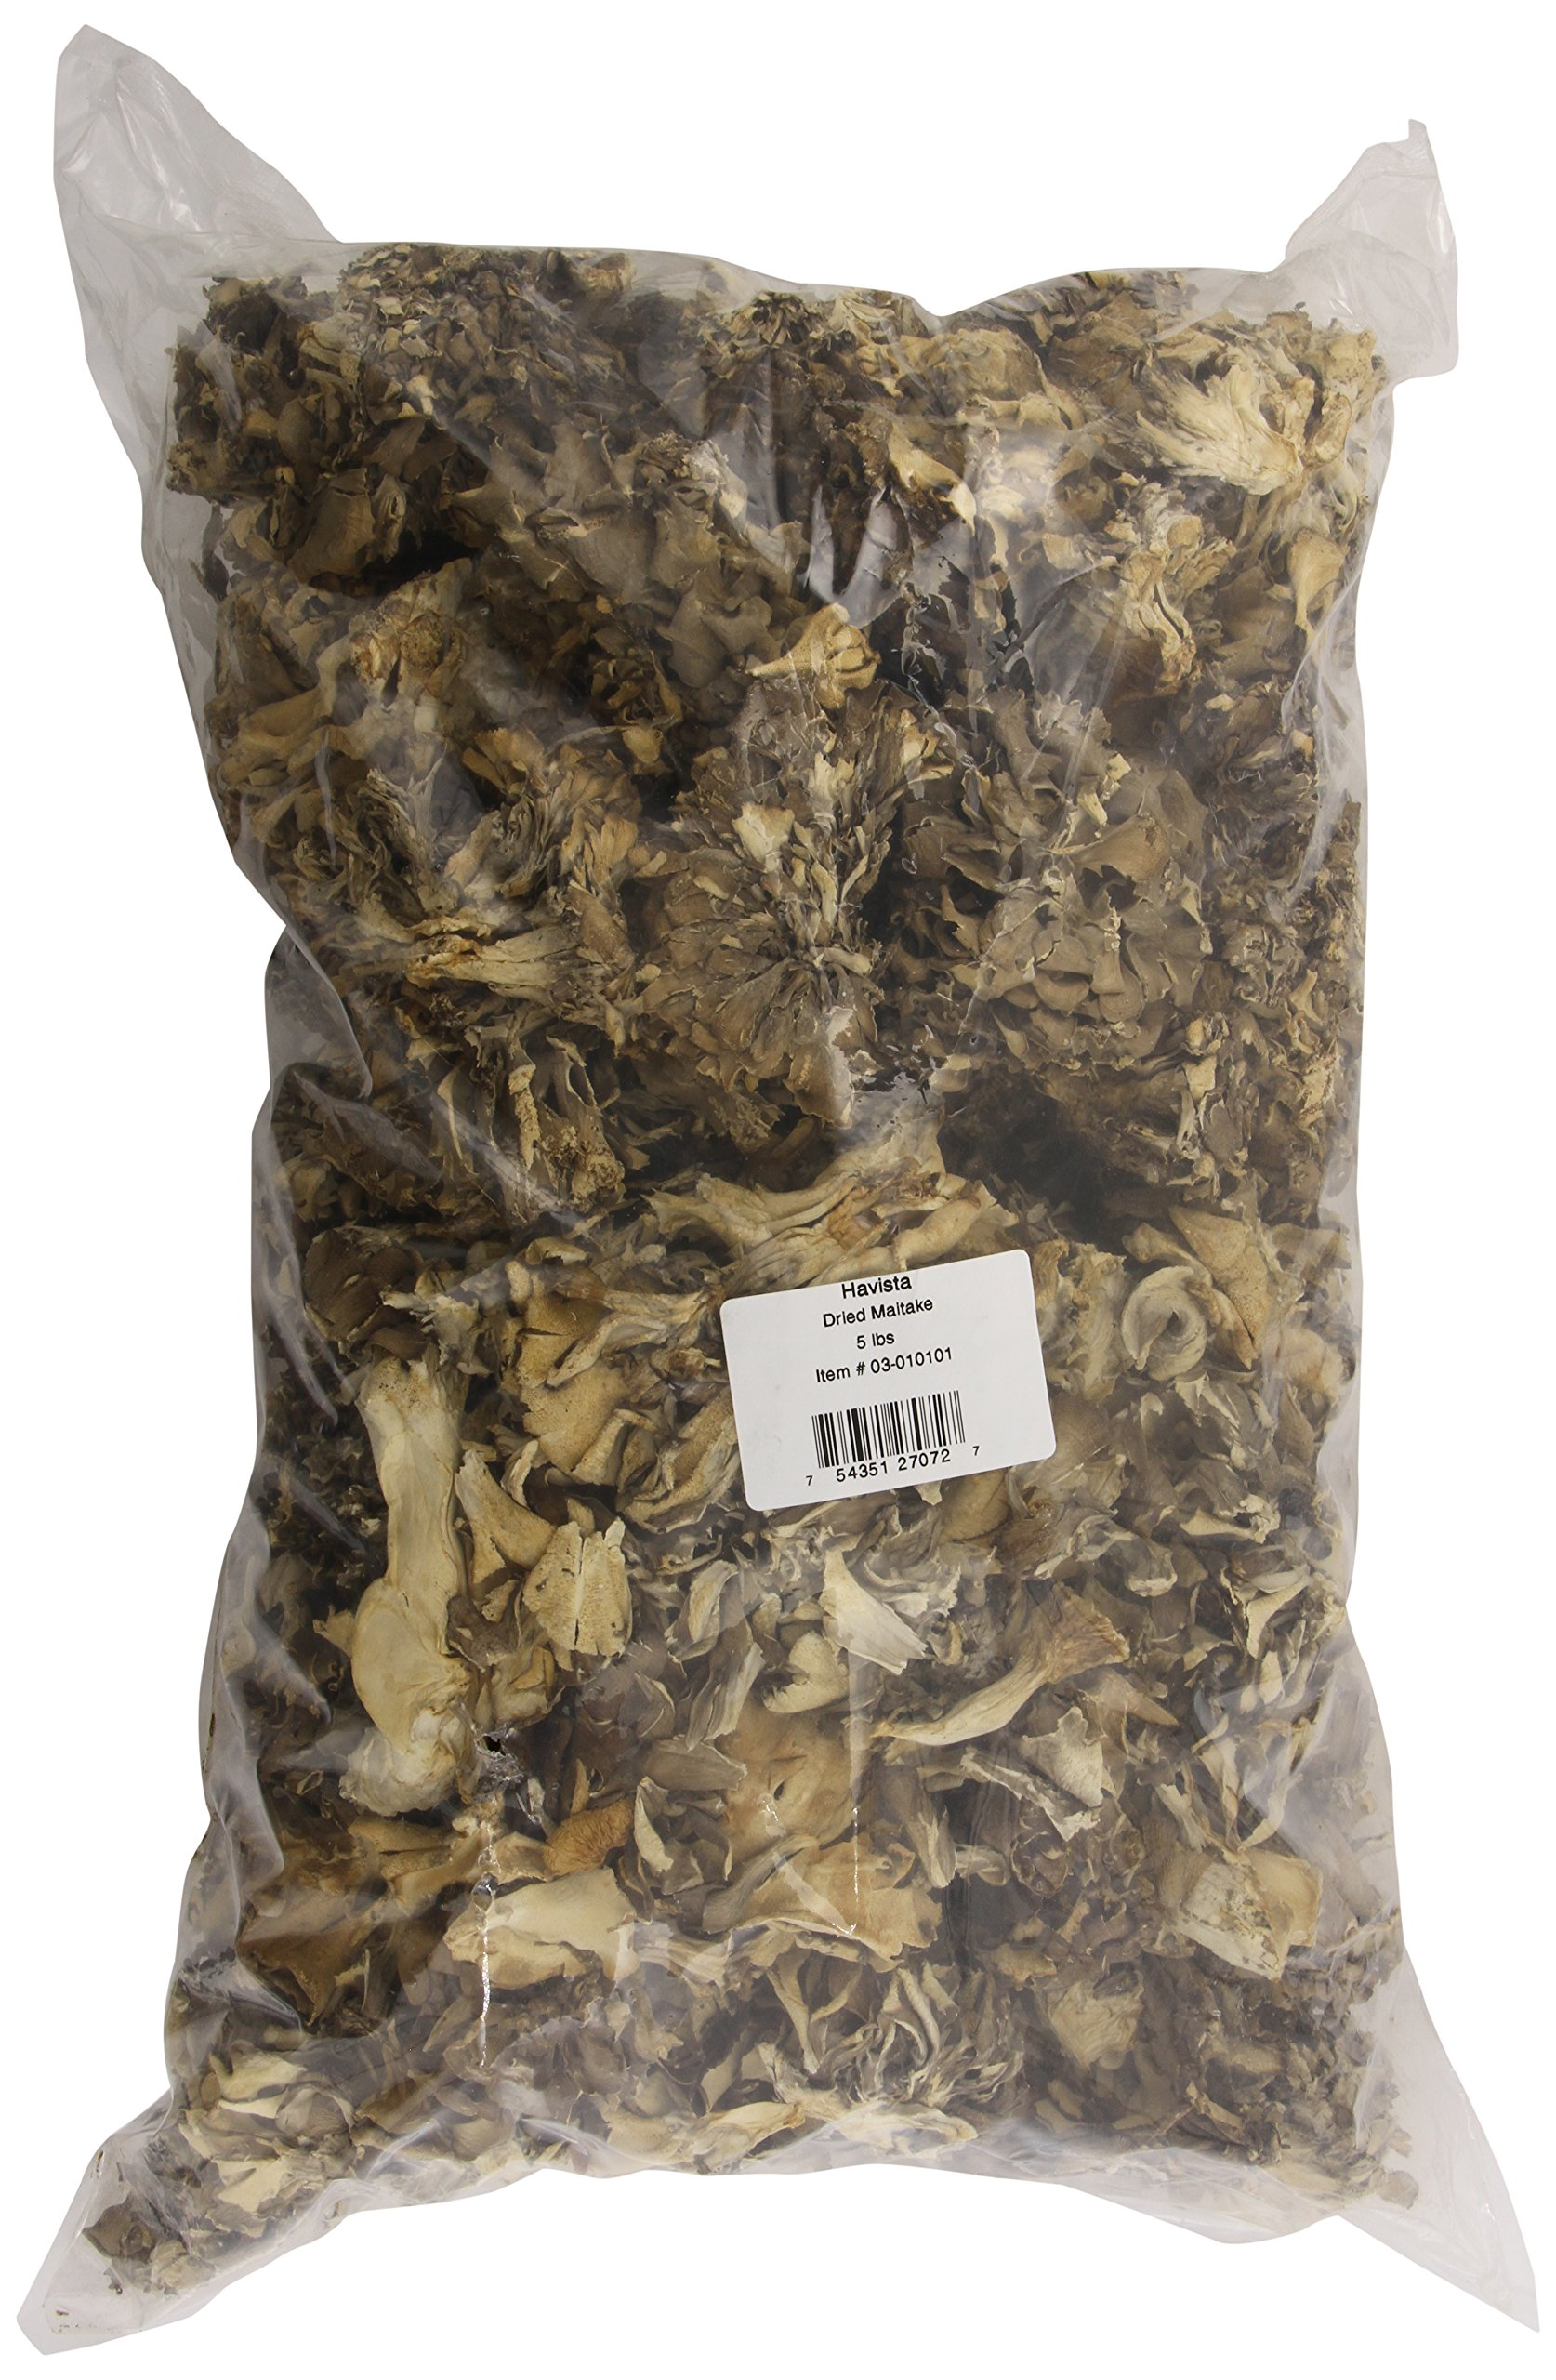 Havista Dried Maitake Mushrooms, 5 Pound by Havista